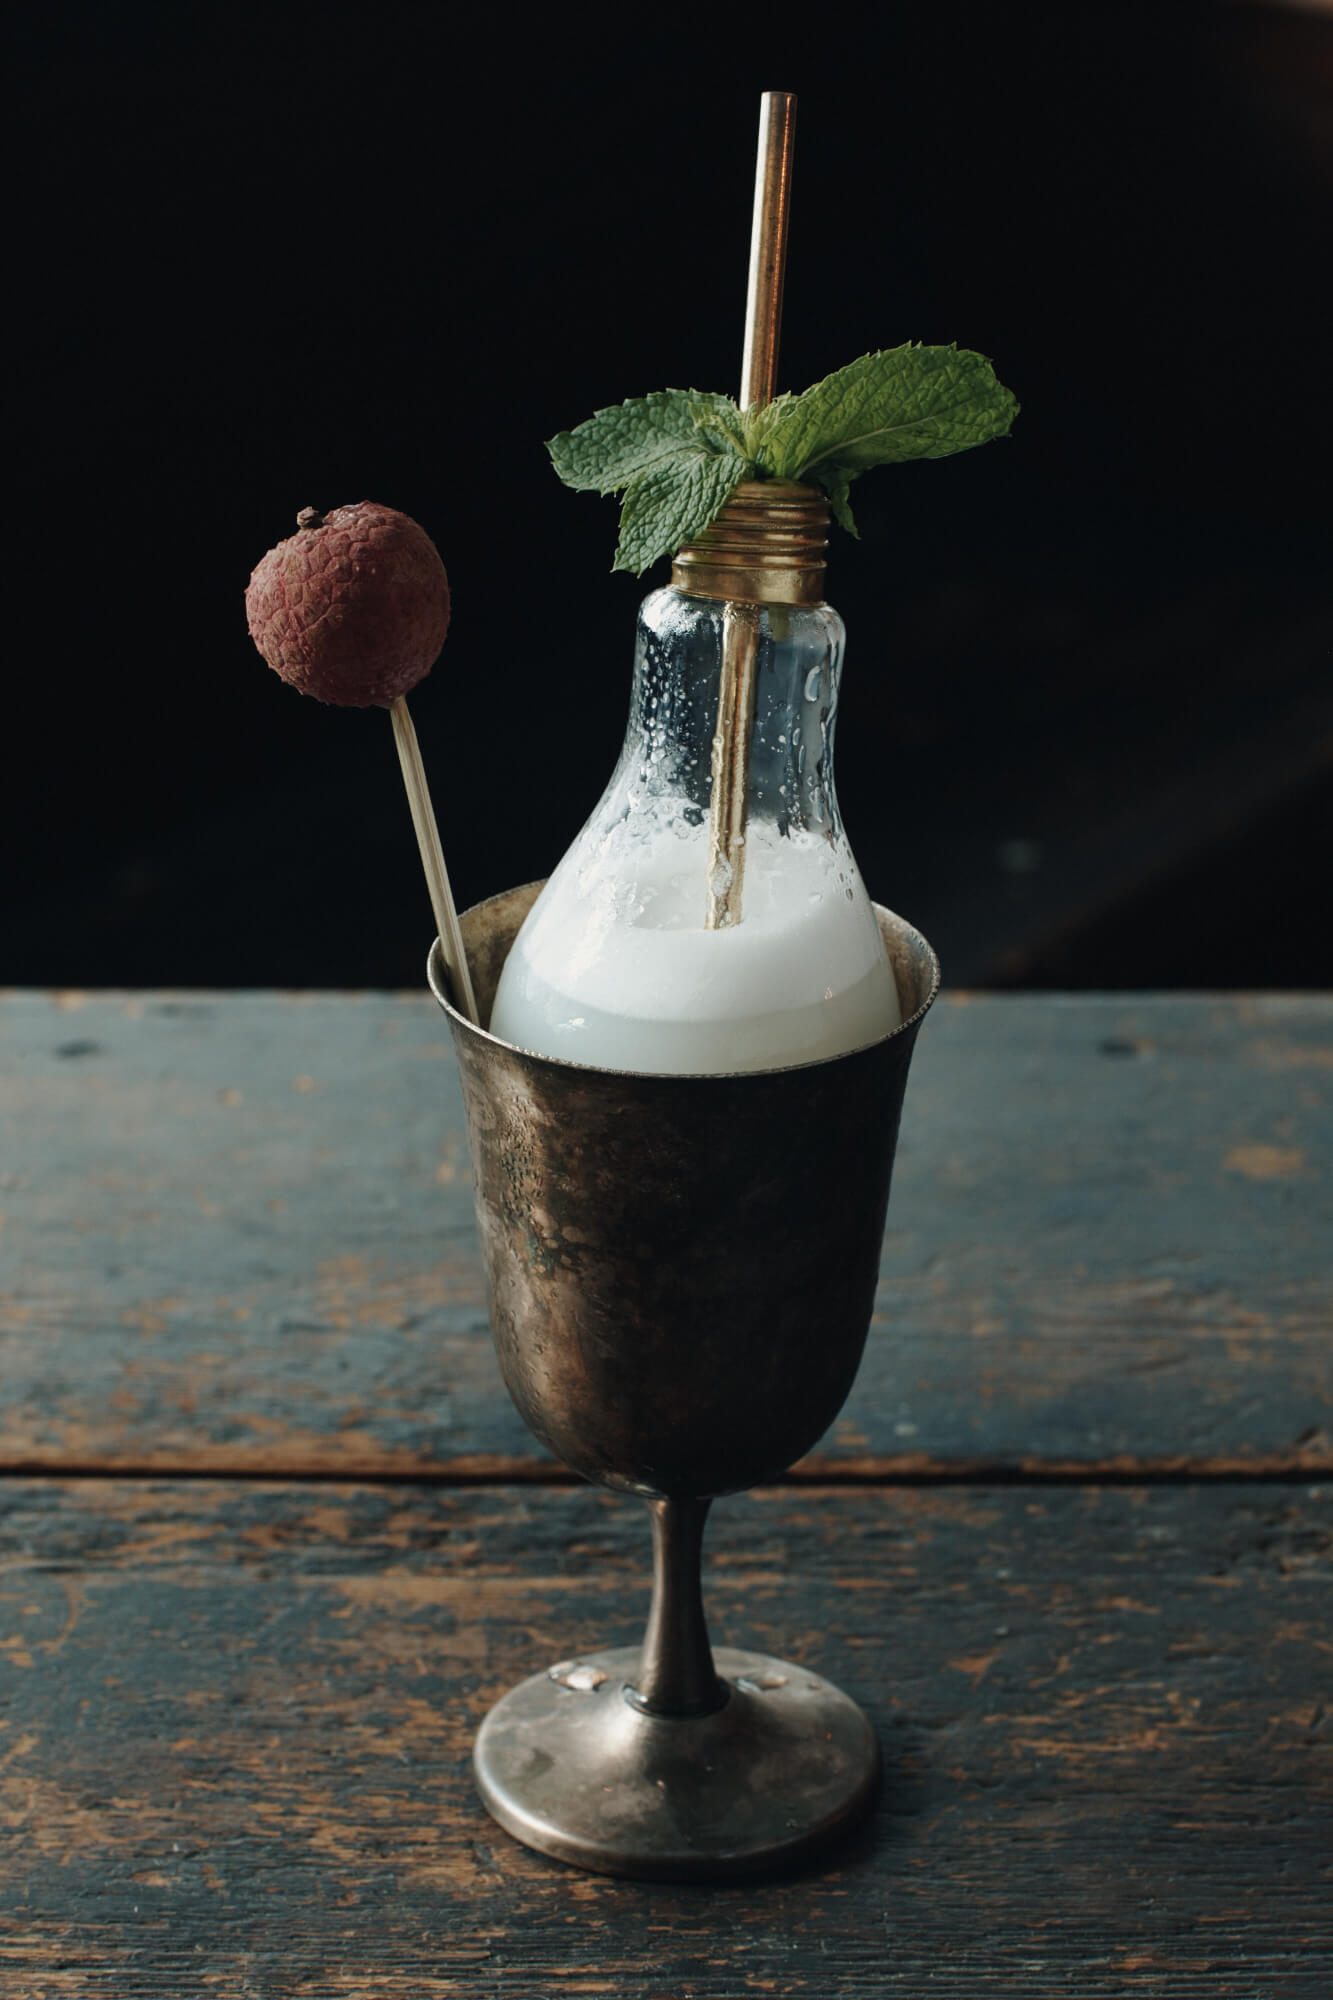 Lychee cocktail from ROKC served in a light bulb